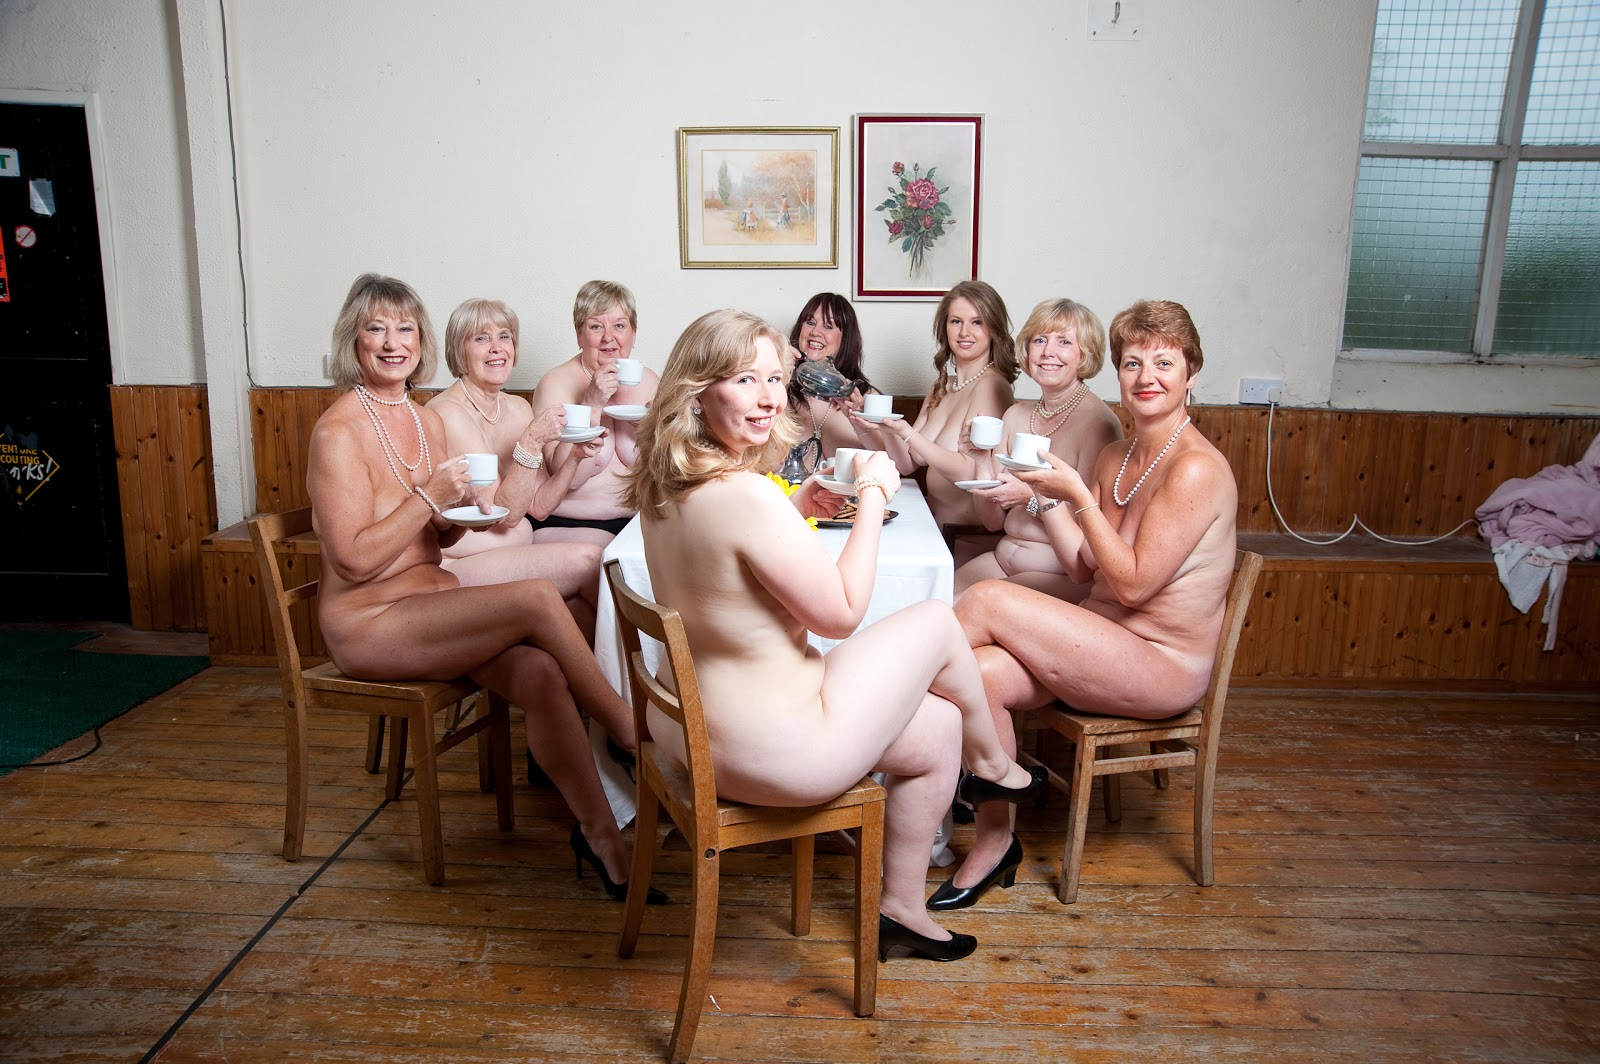 senior nude calendar girls